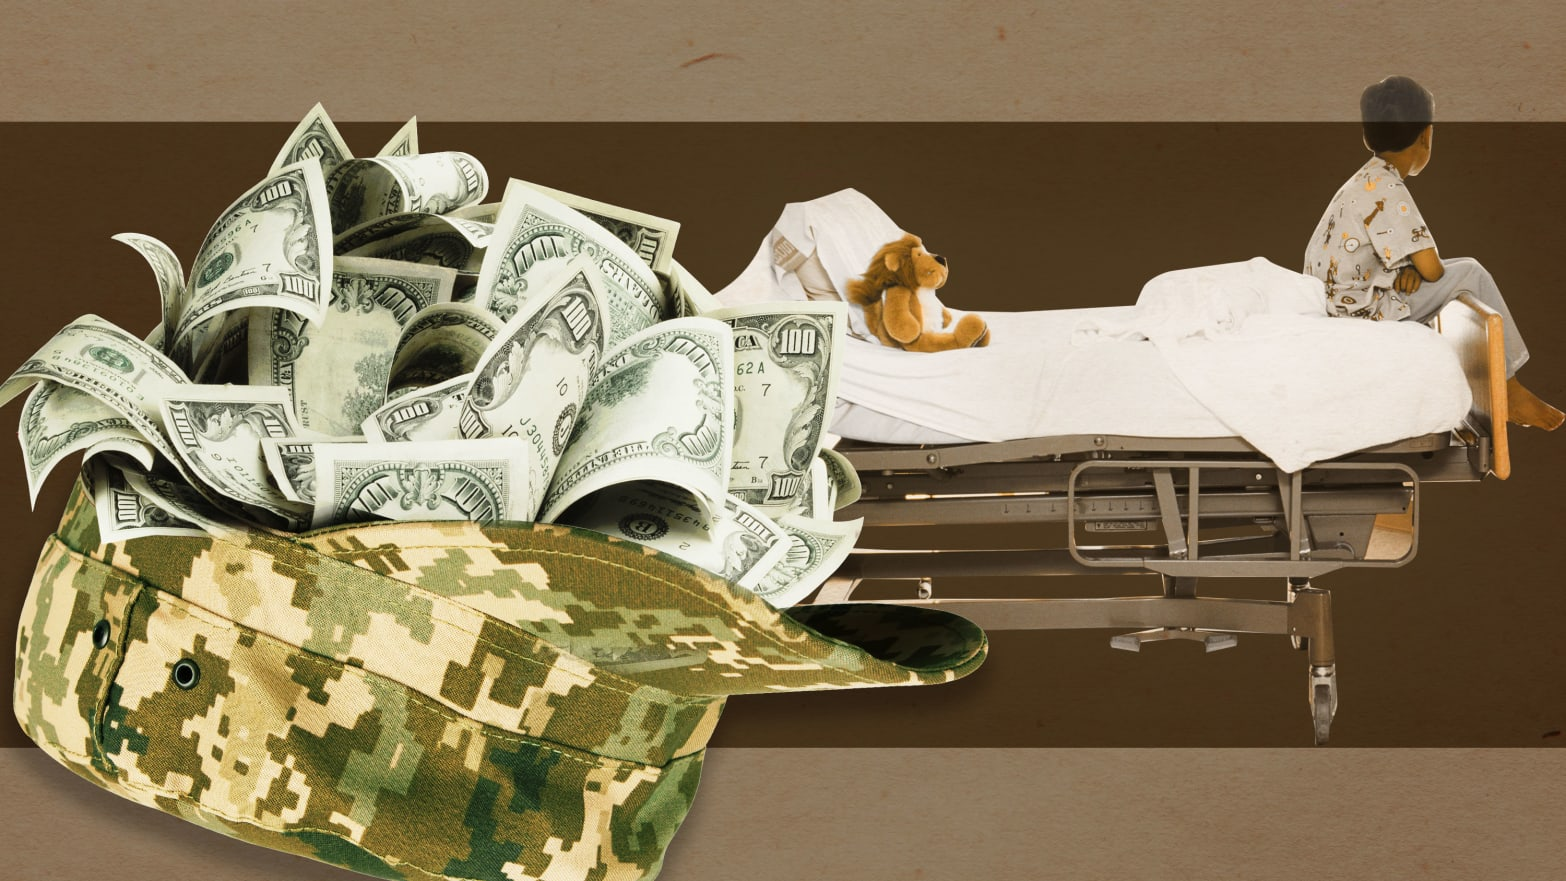 Former VA employee used Vets' ailing kids to scam millions